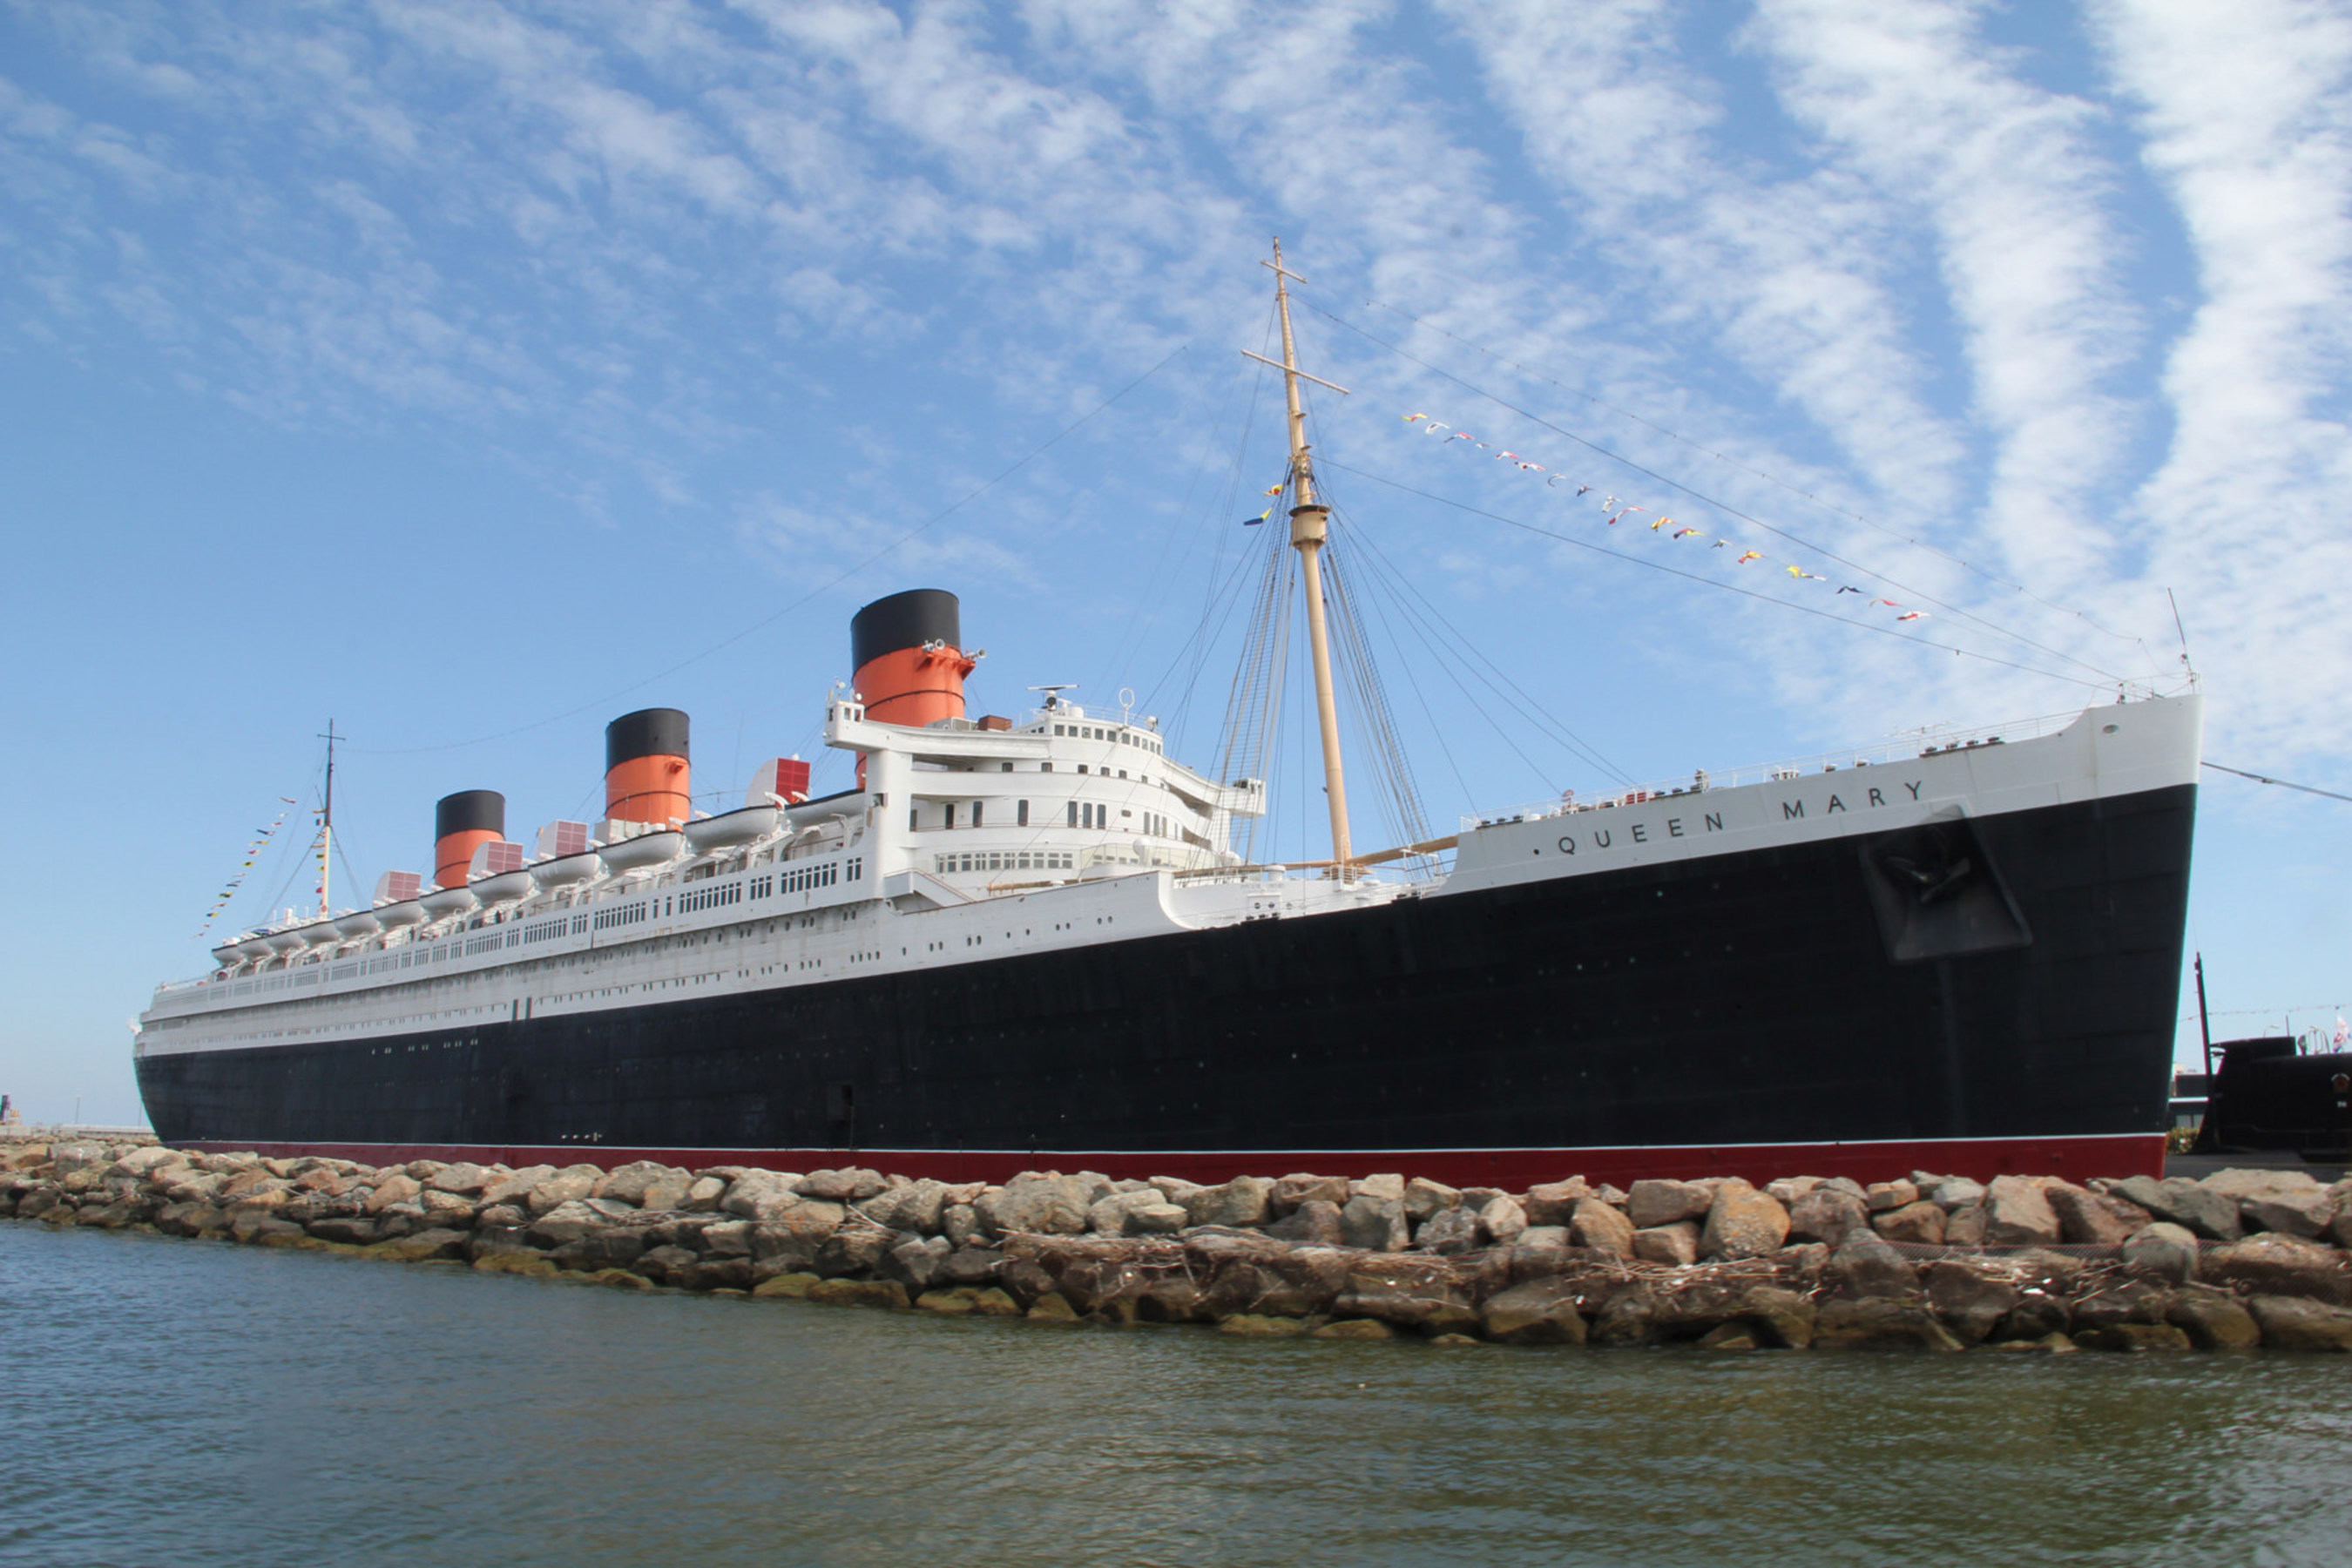 The Queen Mary In New York: An Historic Maritime Vision ...